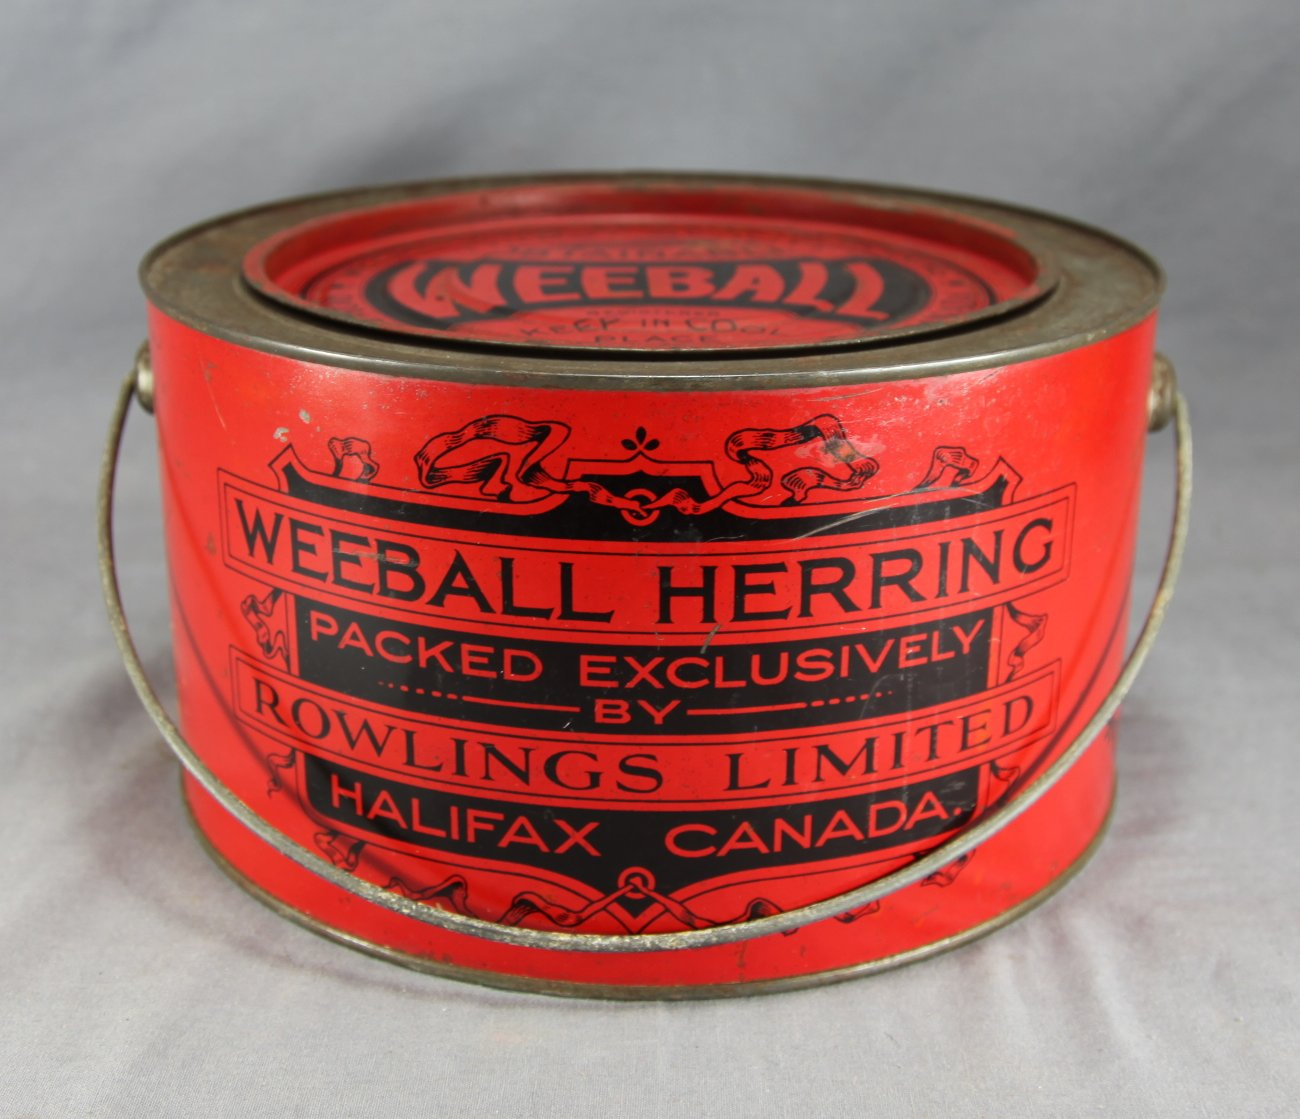 Weeball Herring Halifax Tin